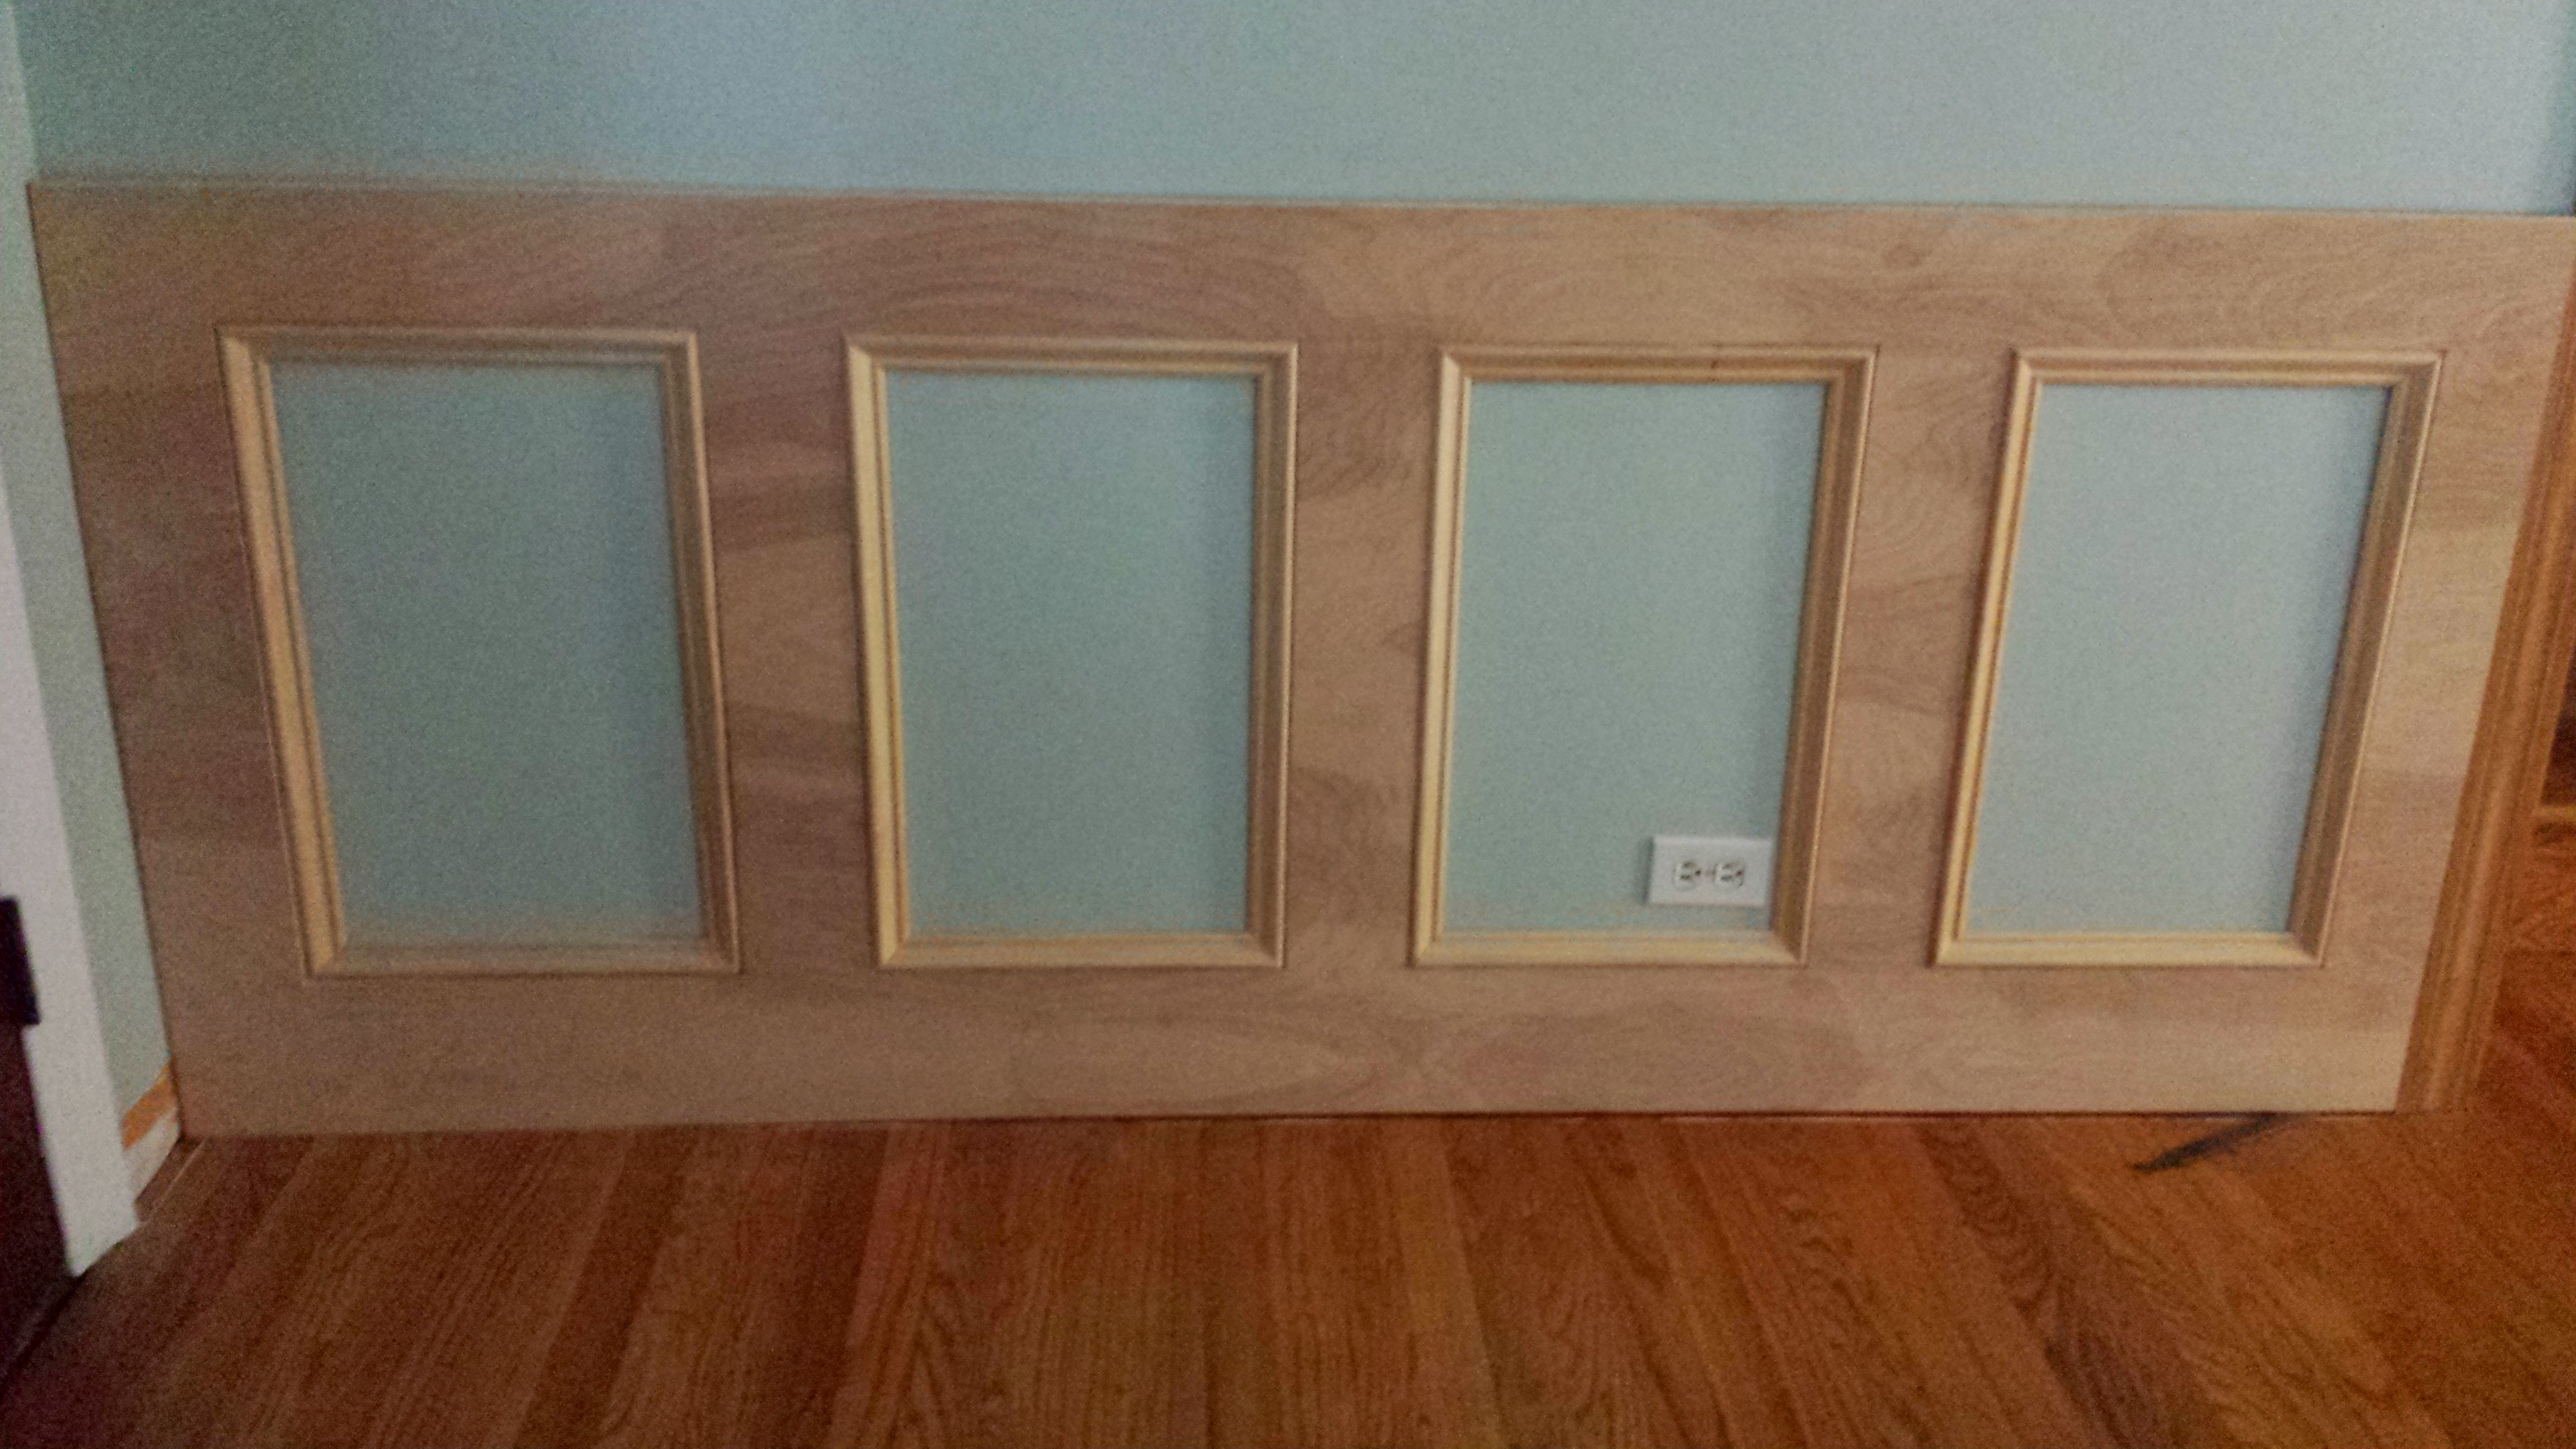 10 Nice Wood Trim Ideas For Walls decorative wood trim for walls how make a recessed wainscoting wall